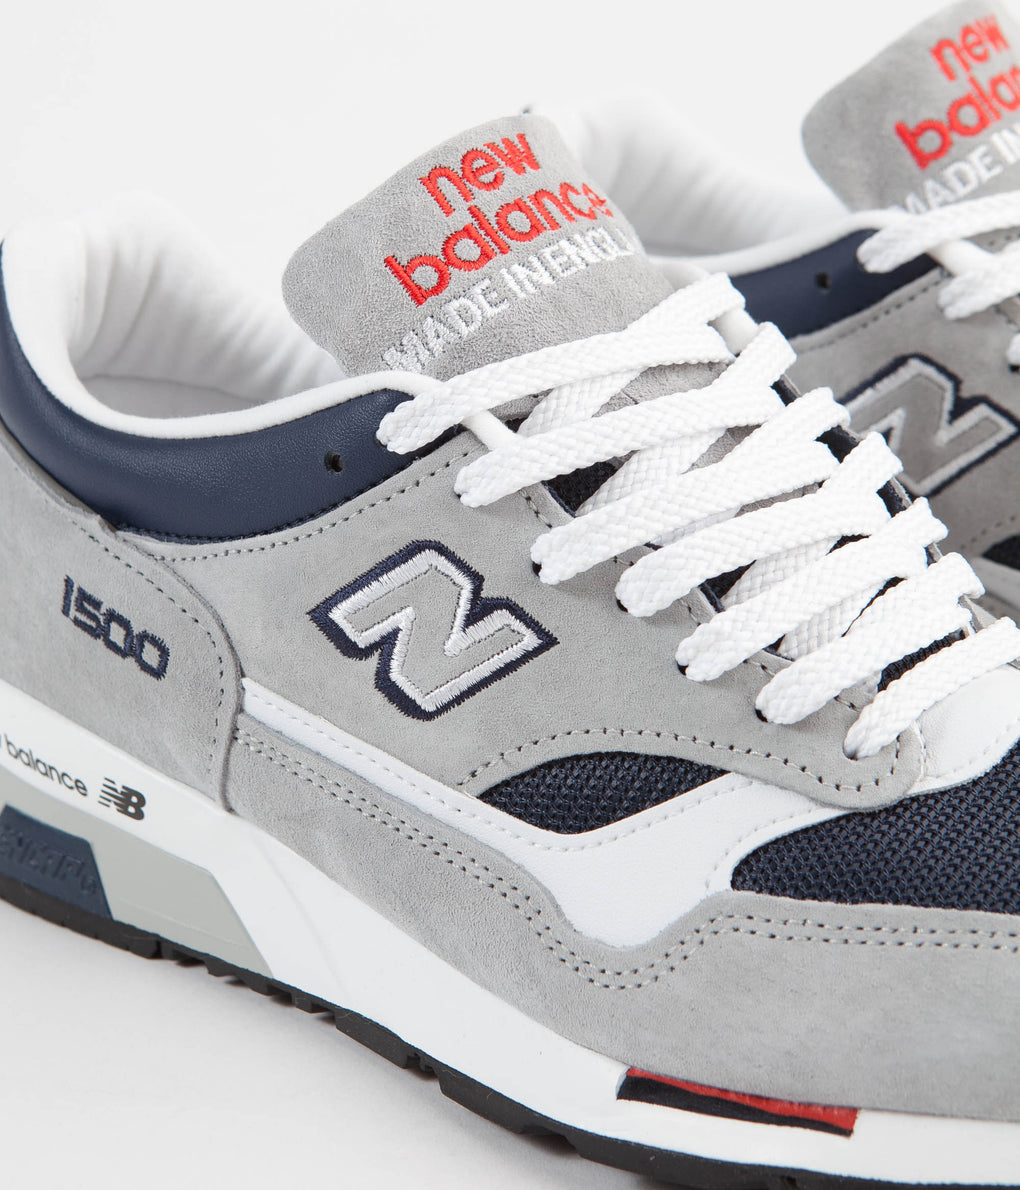 New Balance 1500 Made in UK Shoes - Grey / Navy / Red   Always in ...